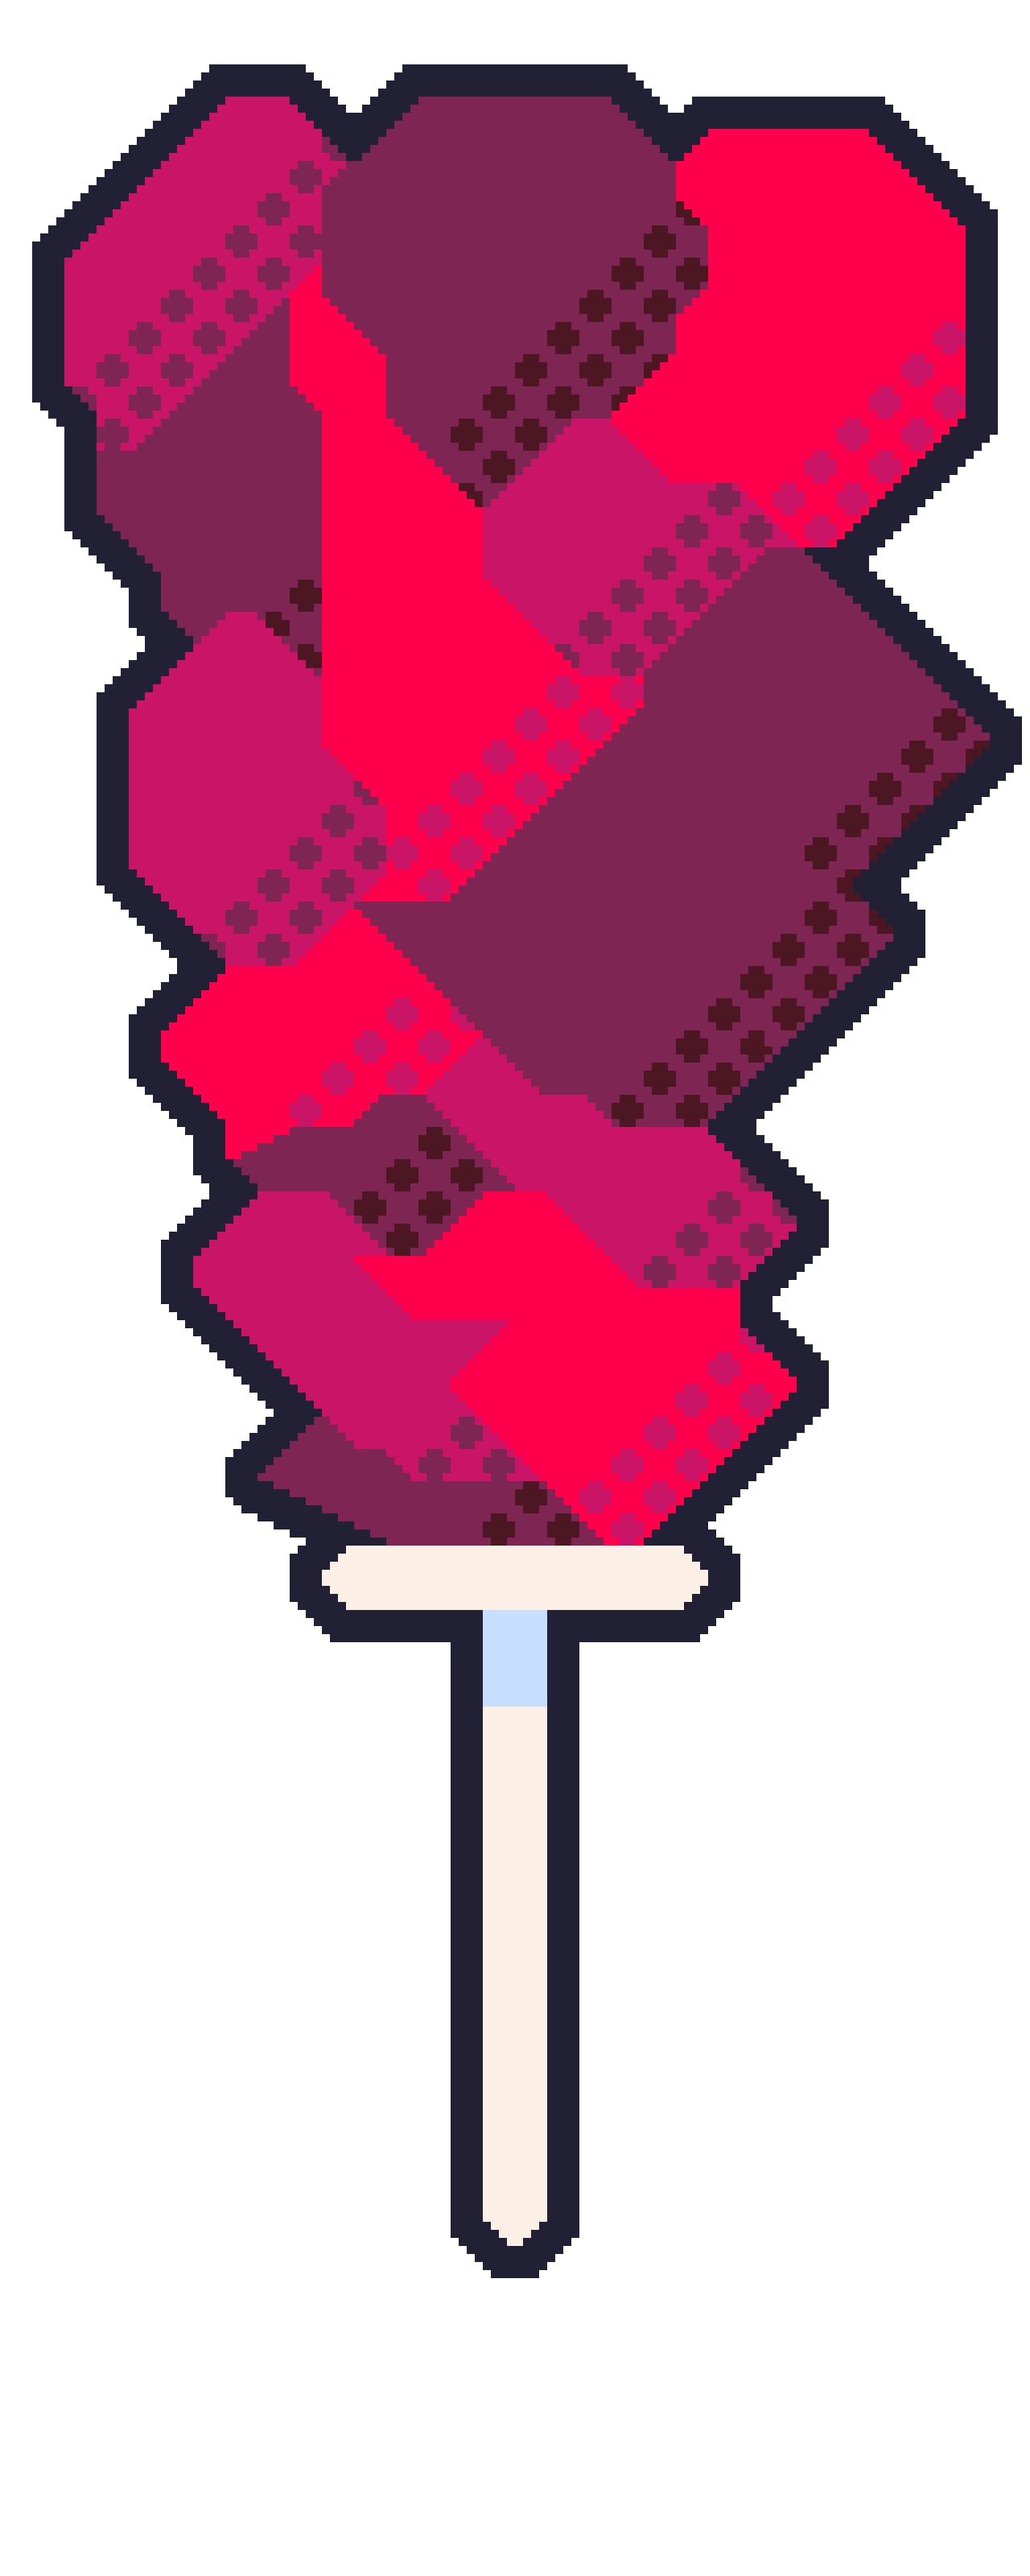 Larger Sprite Size Example: The Sugar Crush